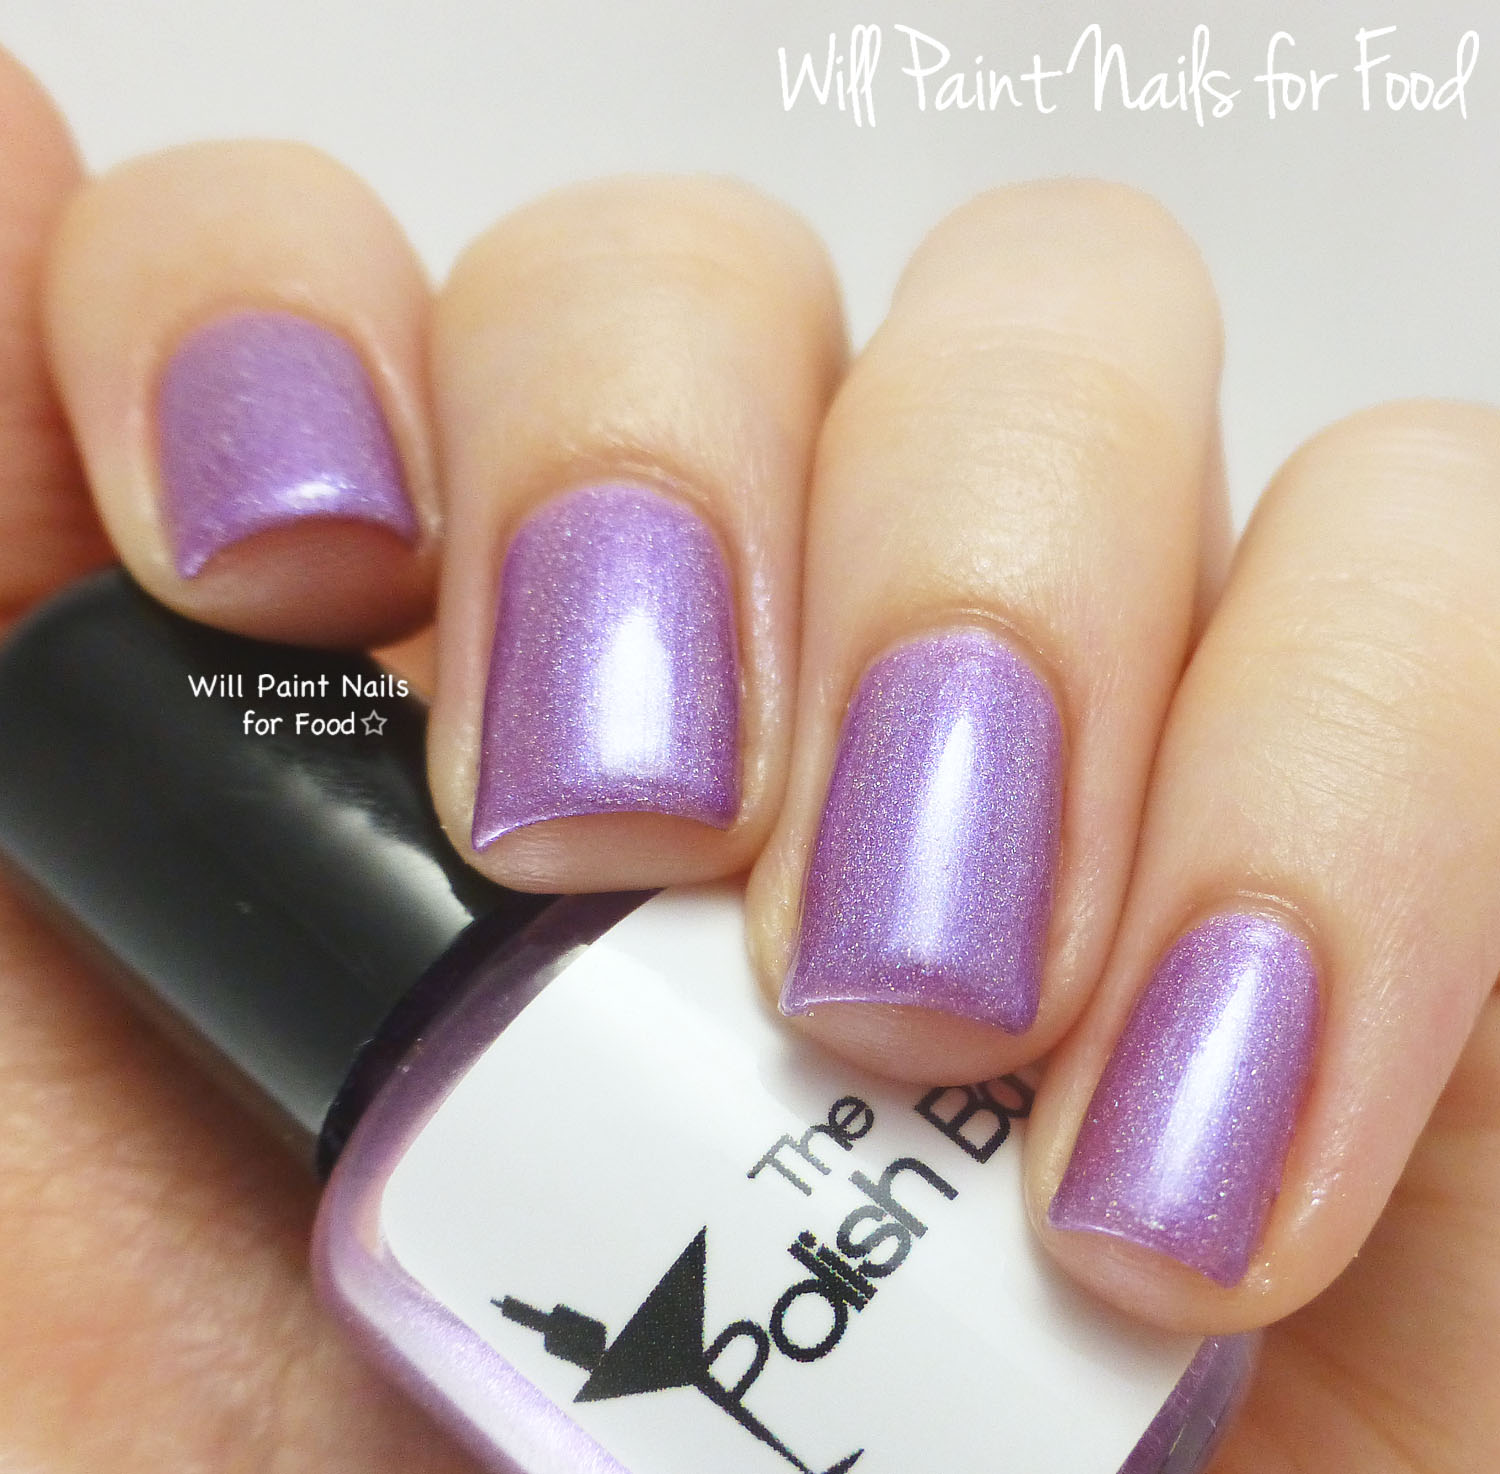 The Polish Bar Orchid 2014 swatch